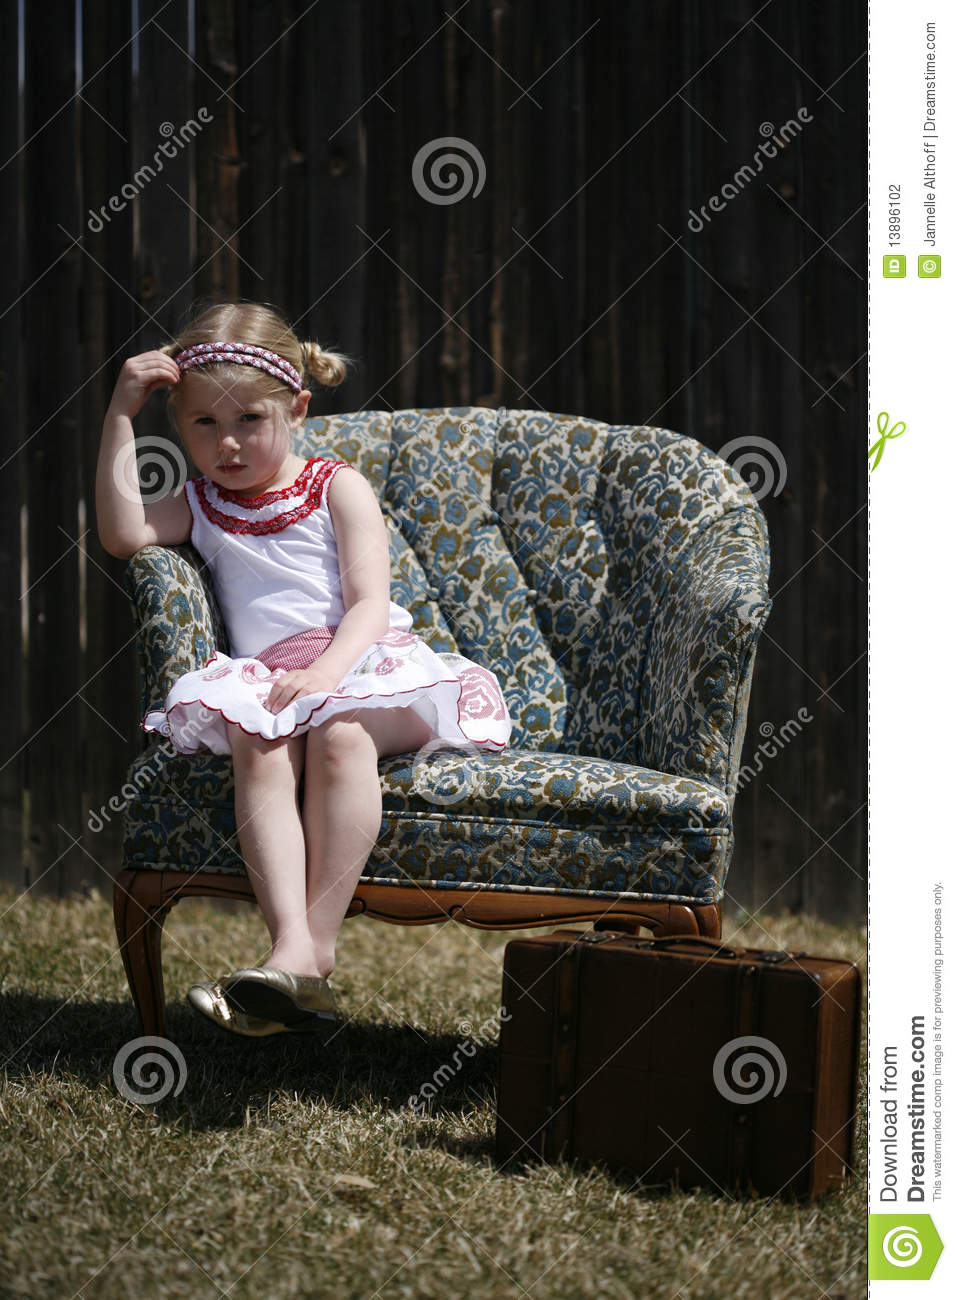 Bored Little Girl Sitting In A Chair Stock Photography